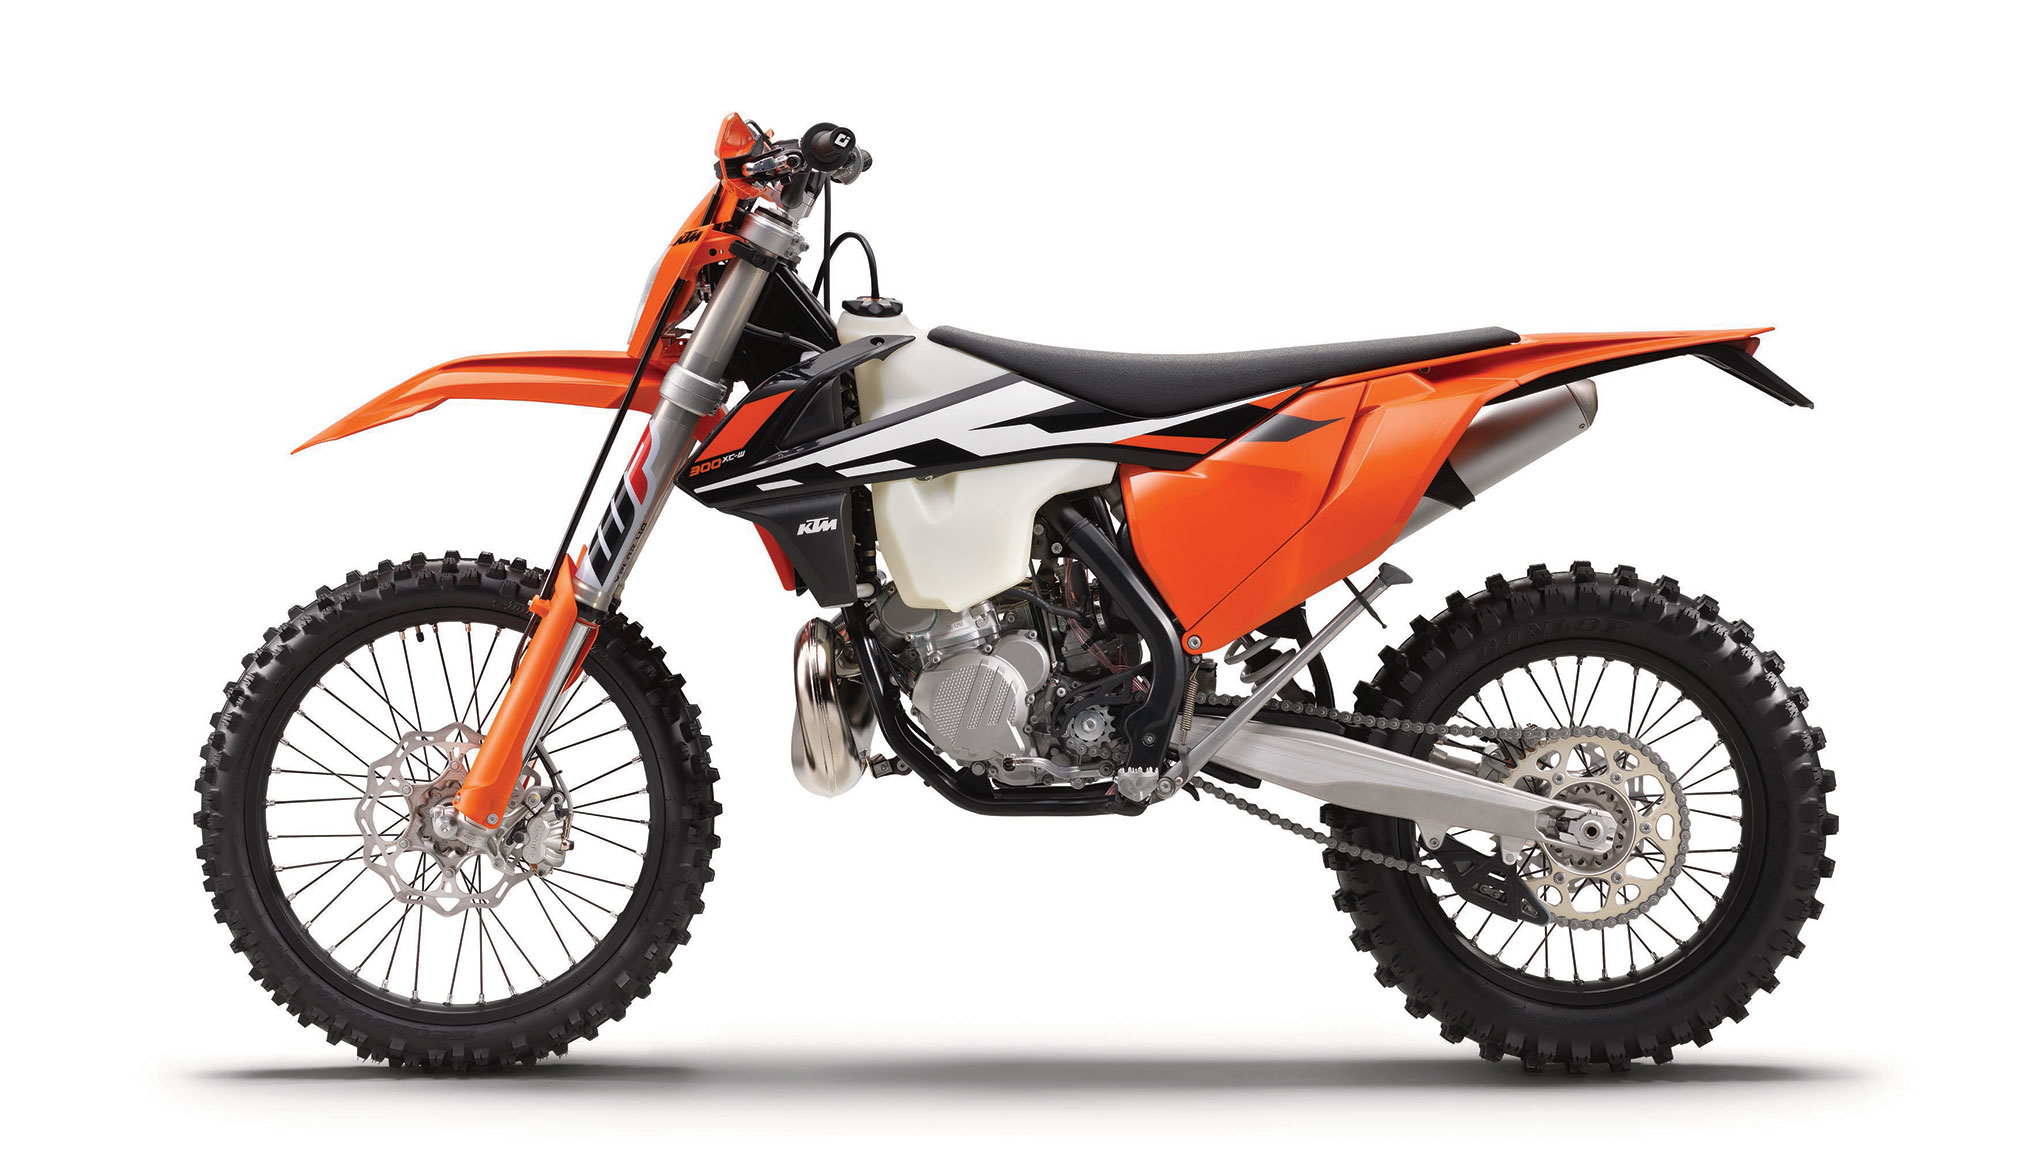 2017 KTM 300 XC W1 2017 ktm 300 xc w review  at virtualis.co